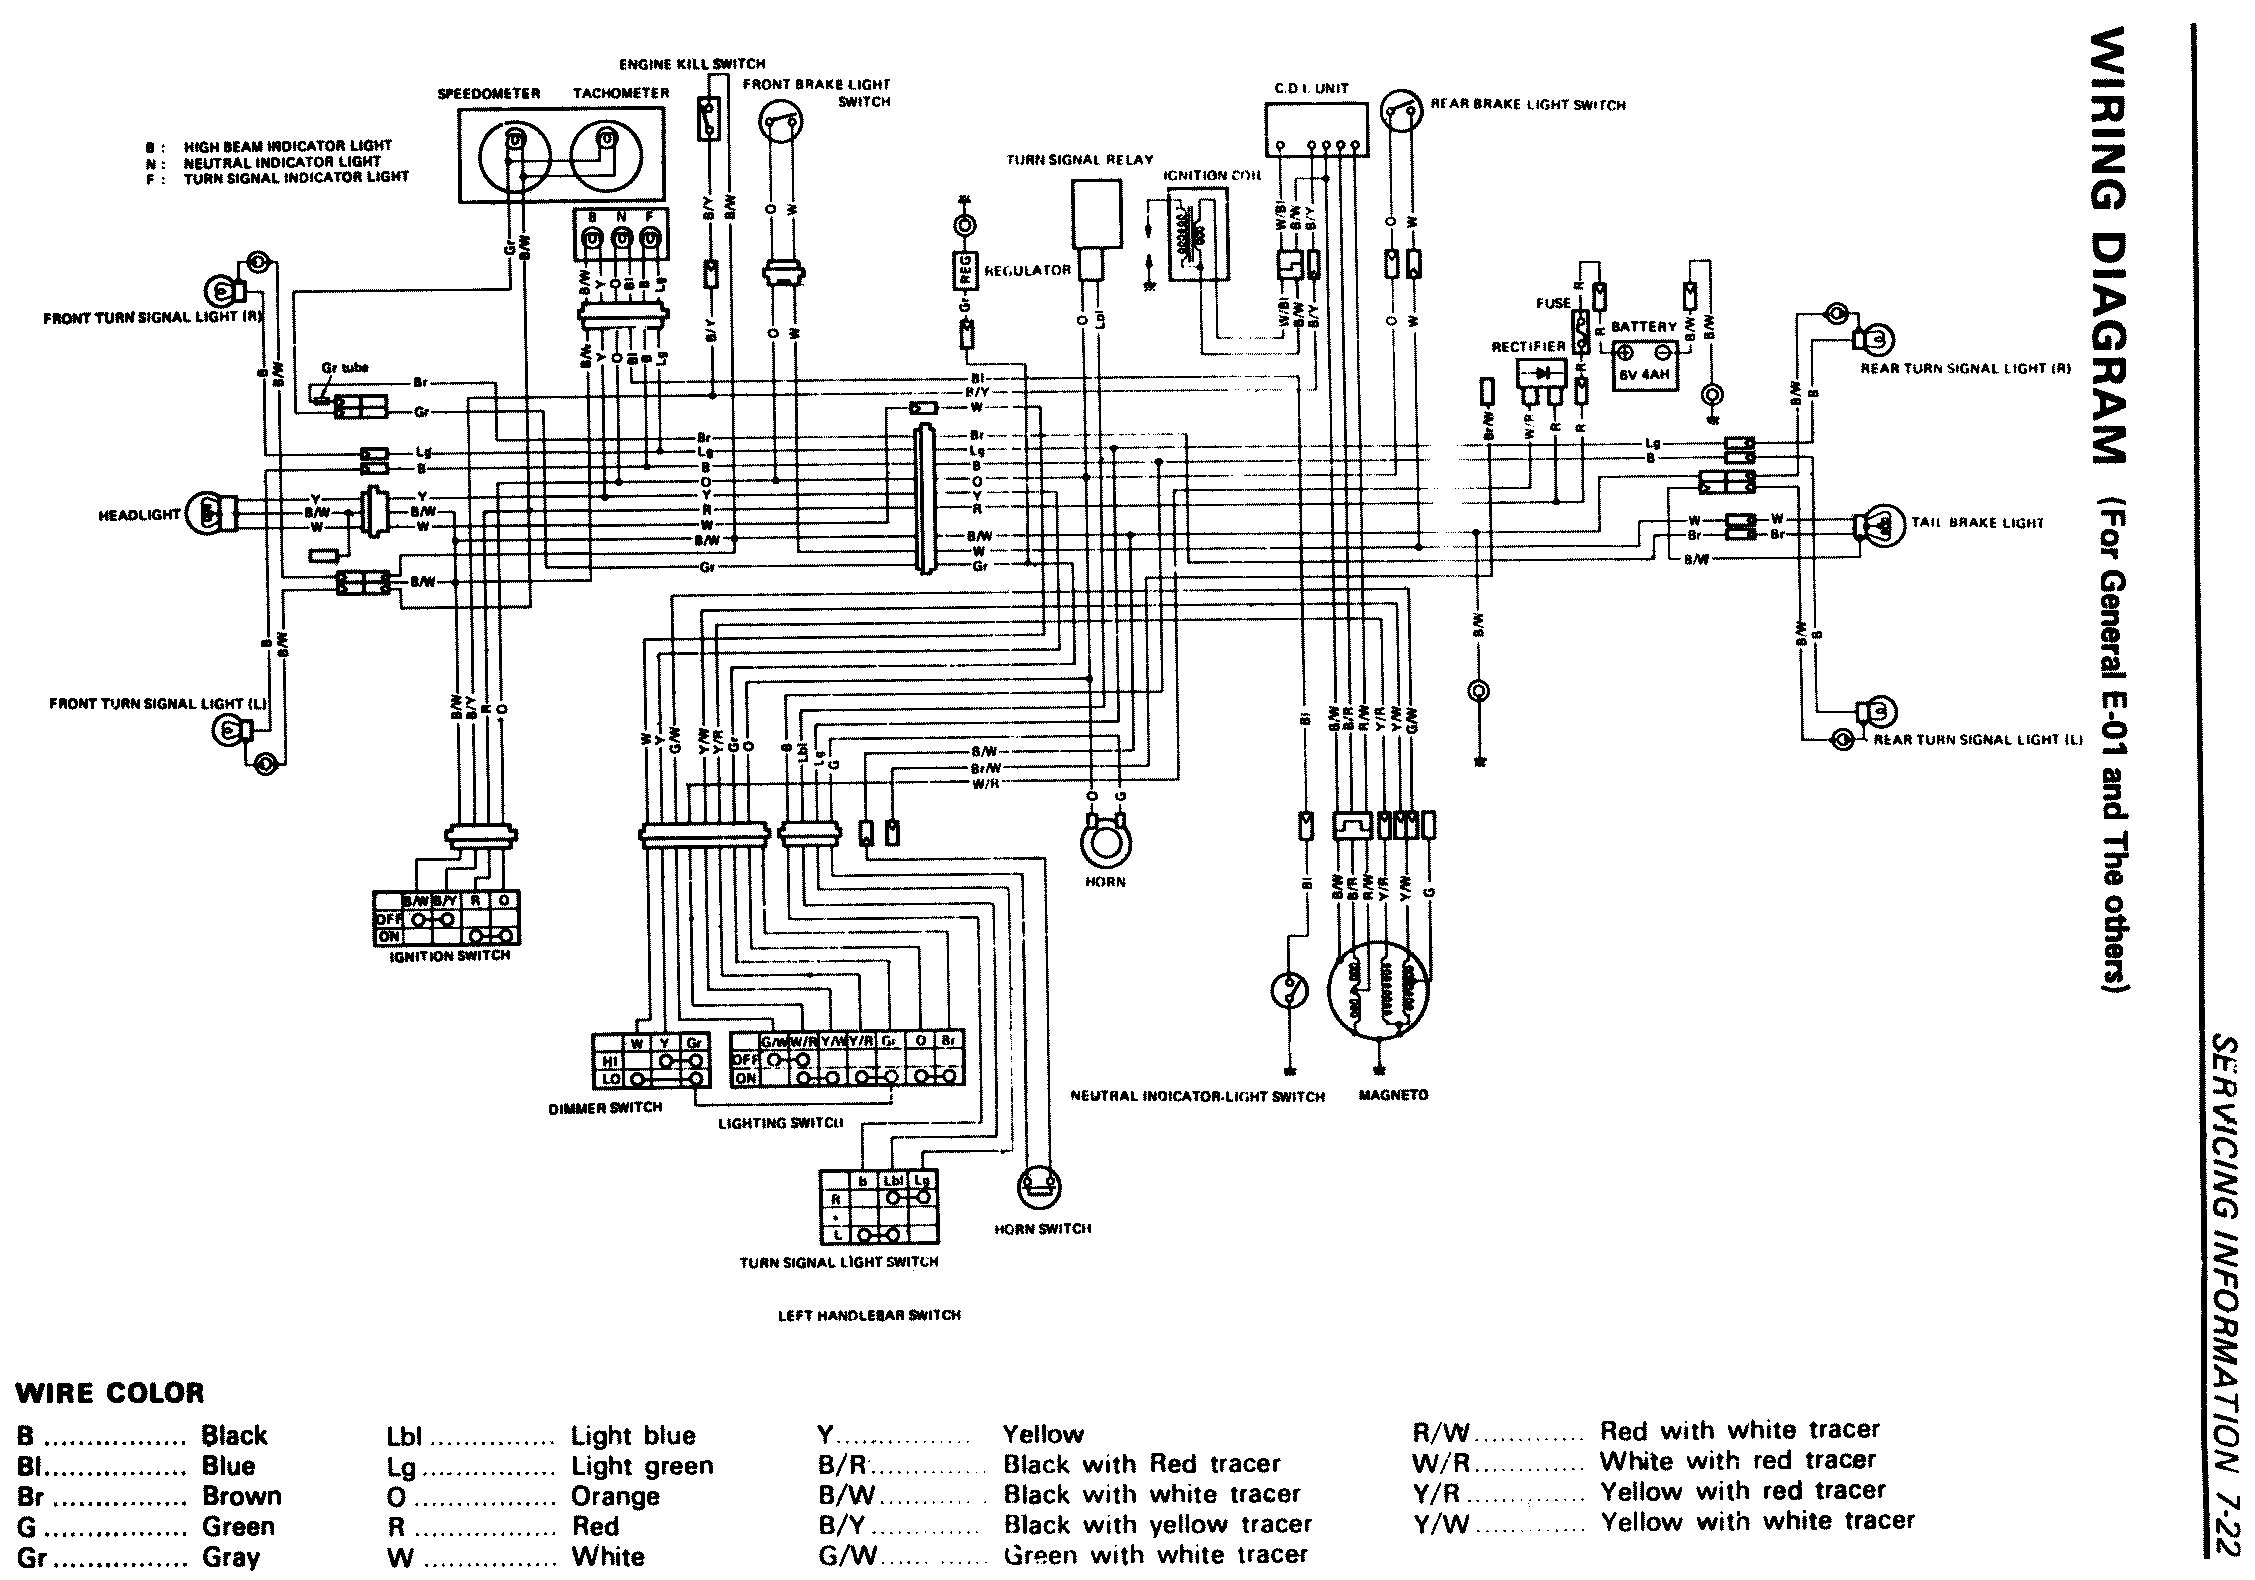 1980 Suzuki Ts250 Wiring Diagram wiring diagrams